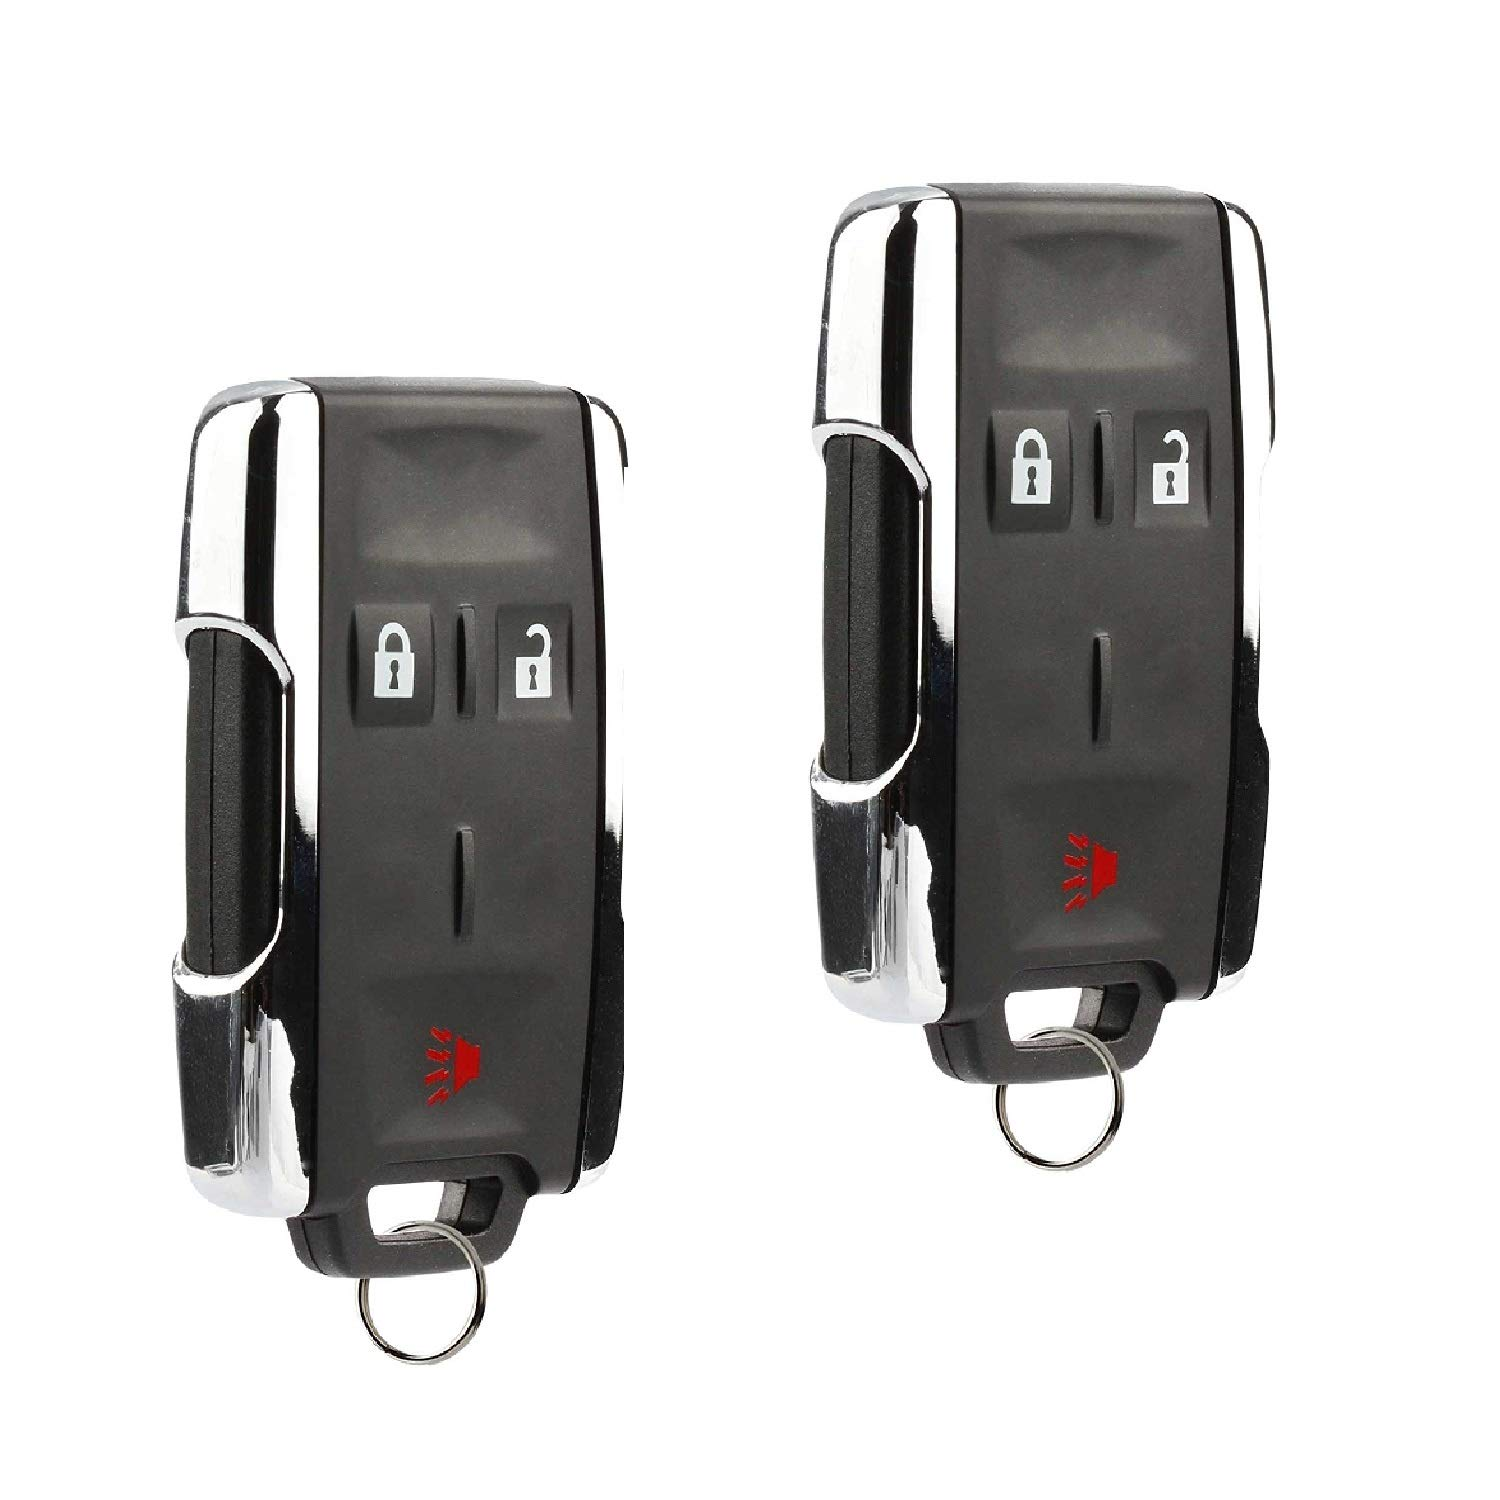 Key Fob Keyless Entry Remote fits Chevy Silverado Colorado/GMC Sierra Canyon 2014 2015 2016 2017 (M3N-32337100 Chrome), Set of 2